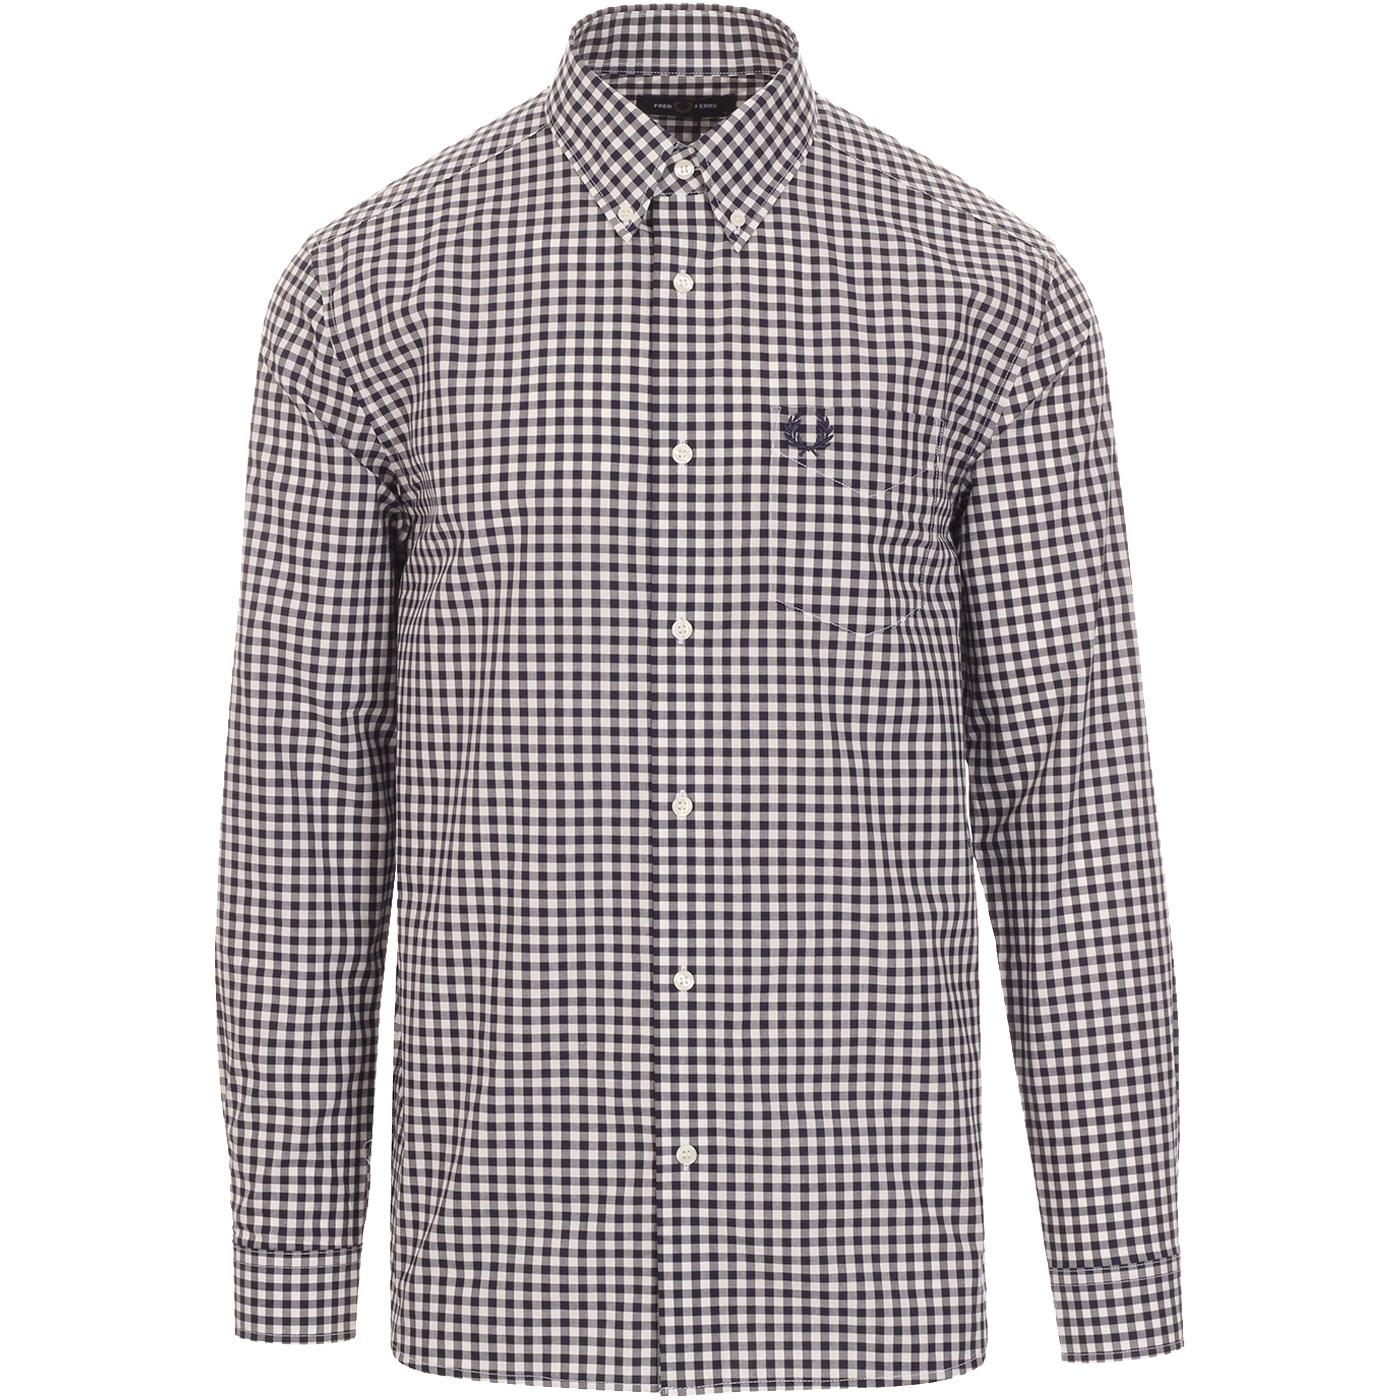 FRED PERRY Mod Long Sleeve Gingham Check Shirt CB